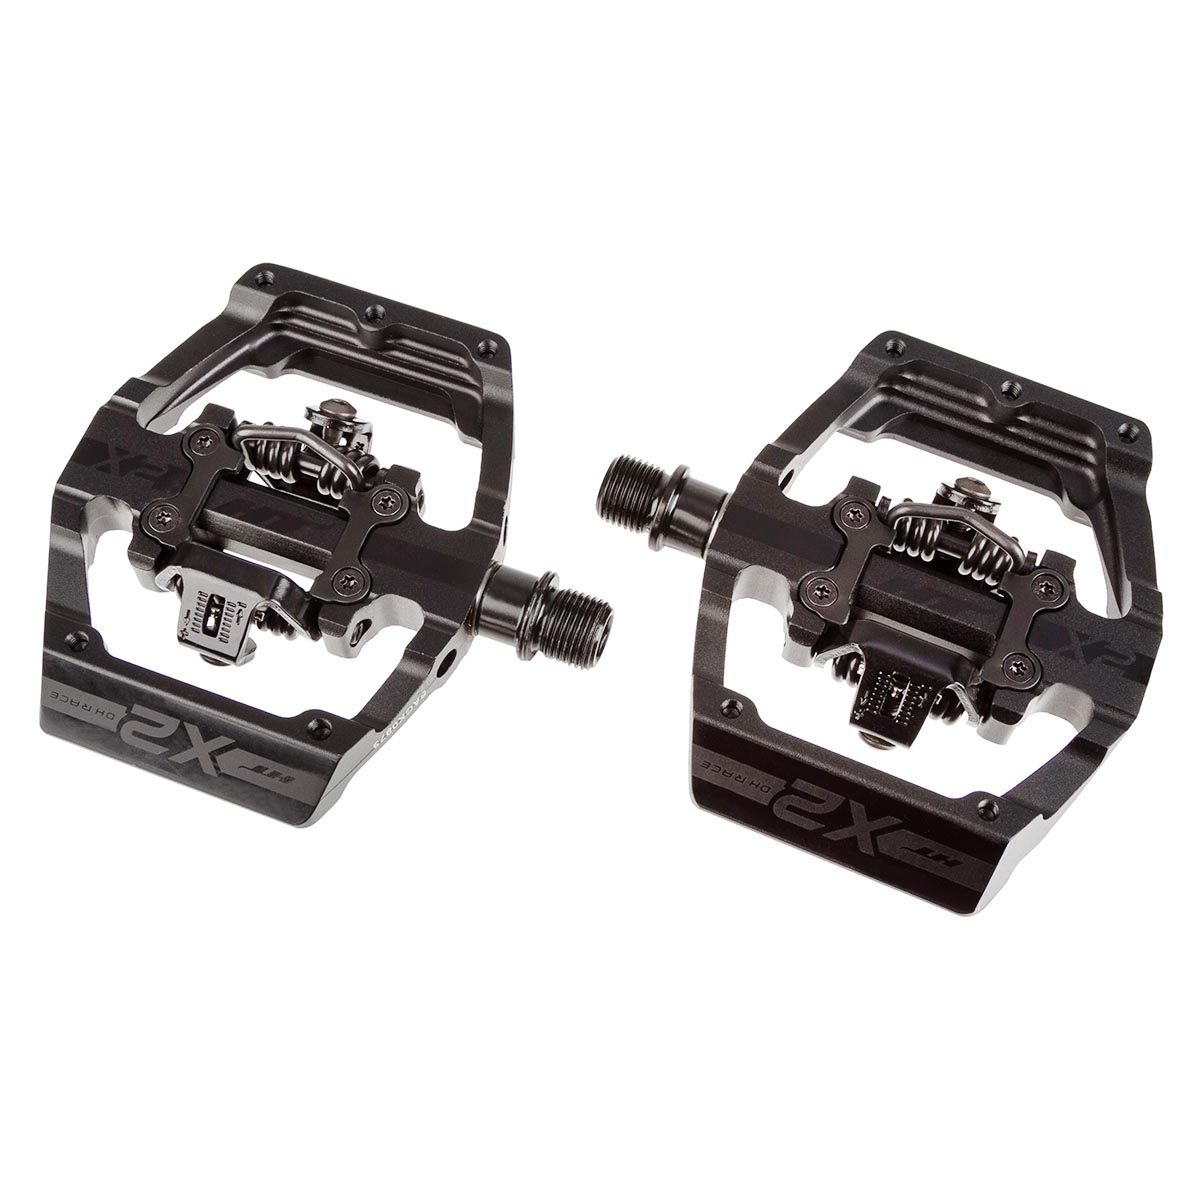 HT Components Klickpedale X2 Stealth Black